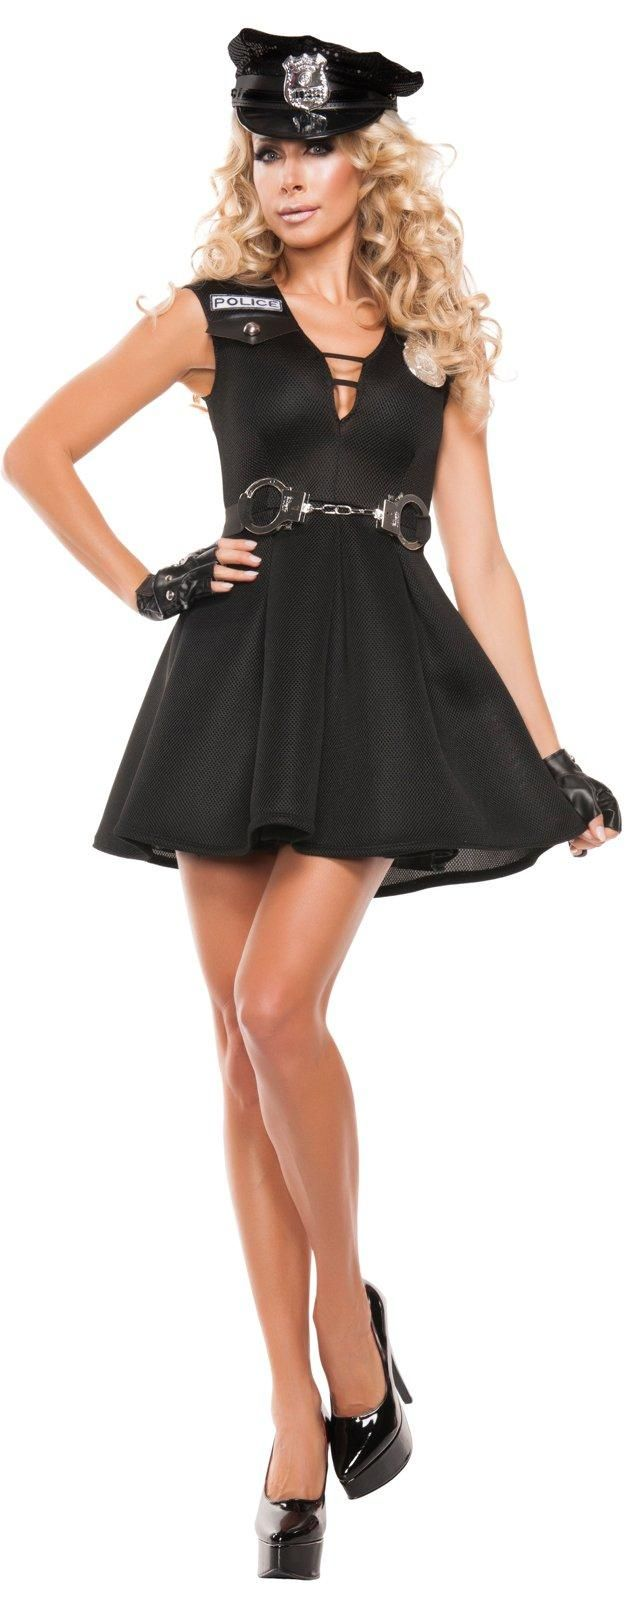 Womens Fashion Police Costume from Buycostumes.com